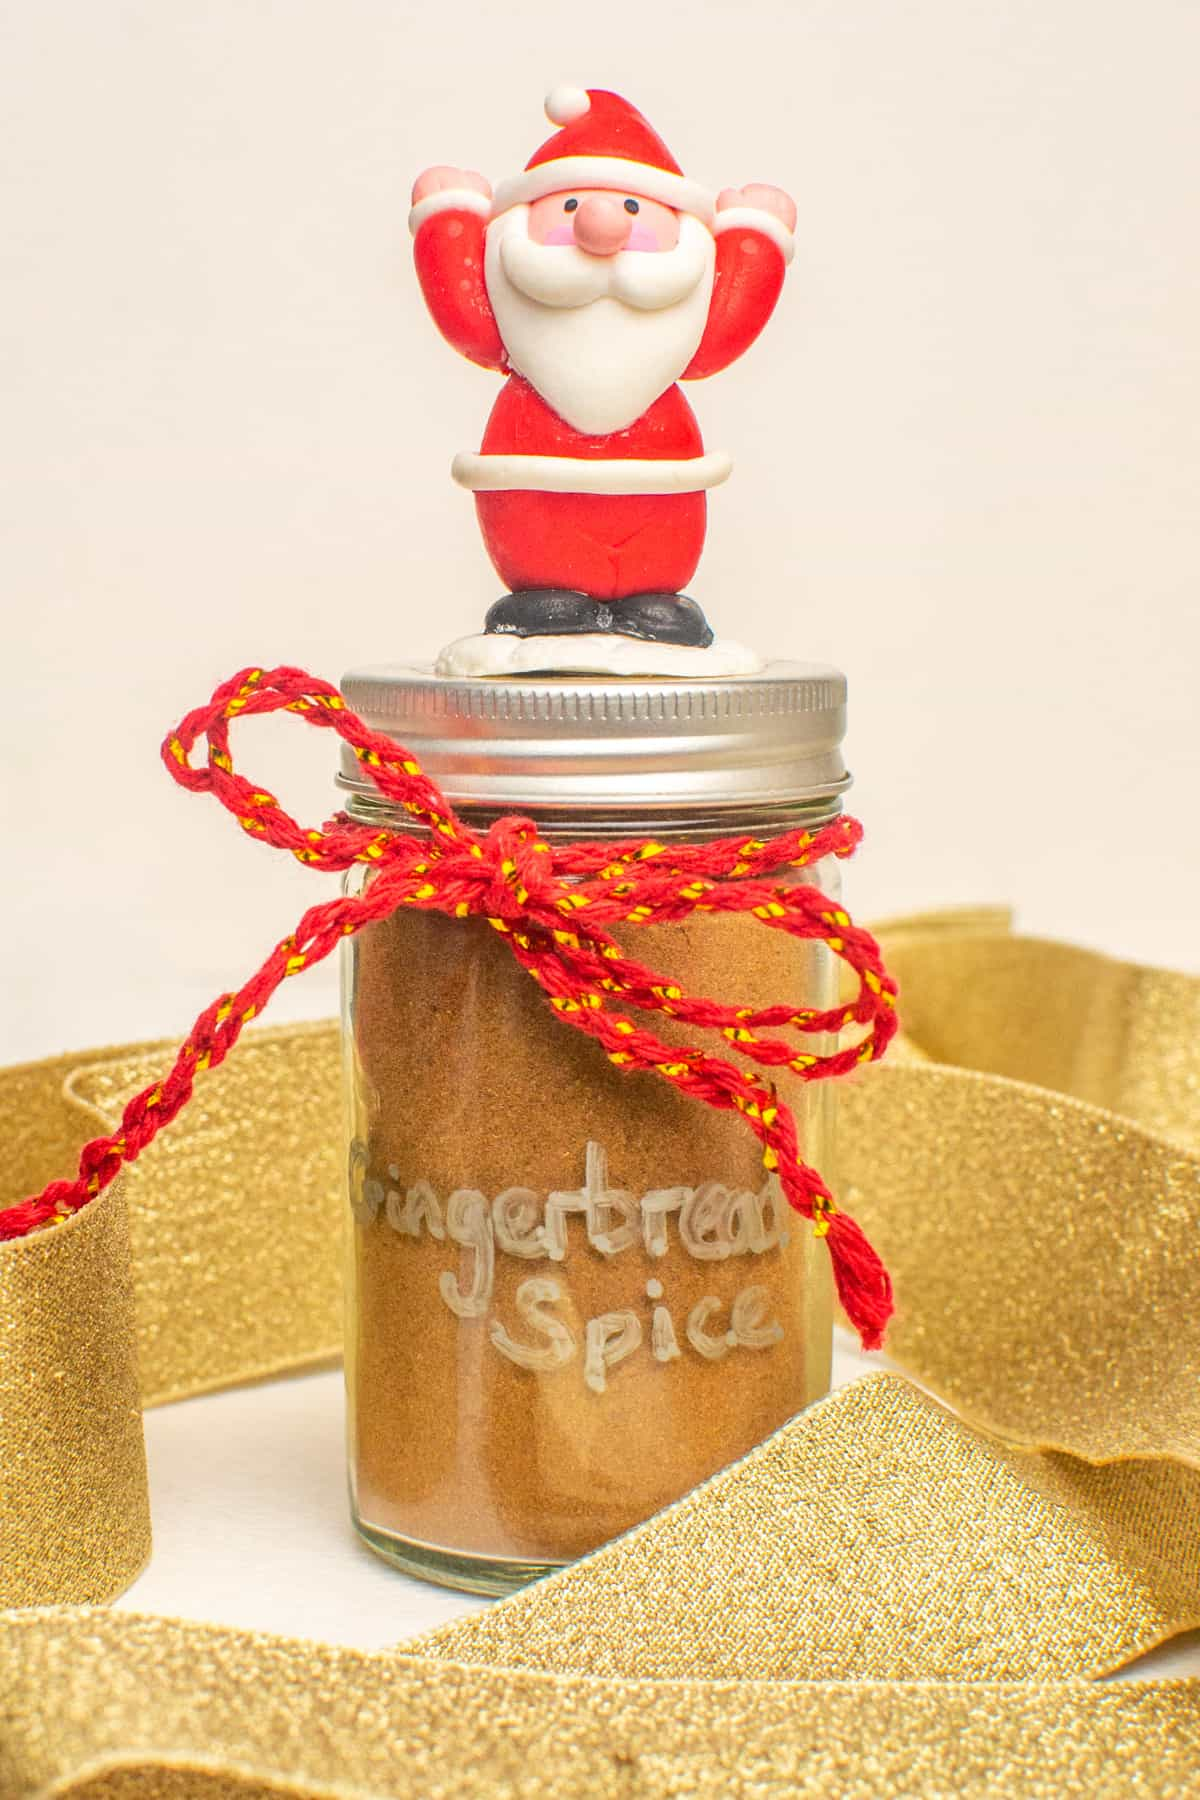 A jar of spice decorated with ribbon, twine and a small Father Christmas on top.